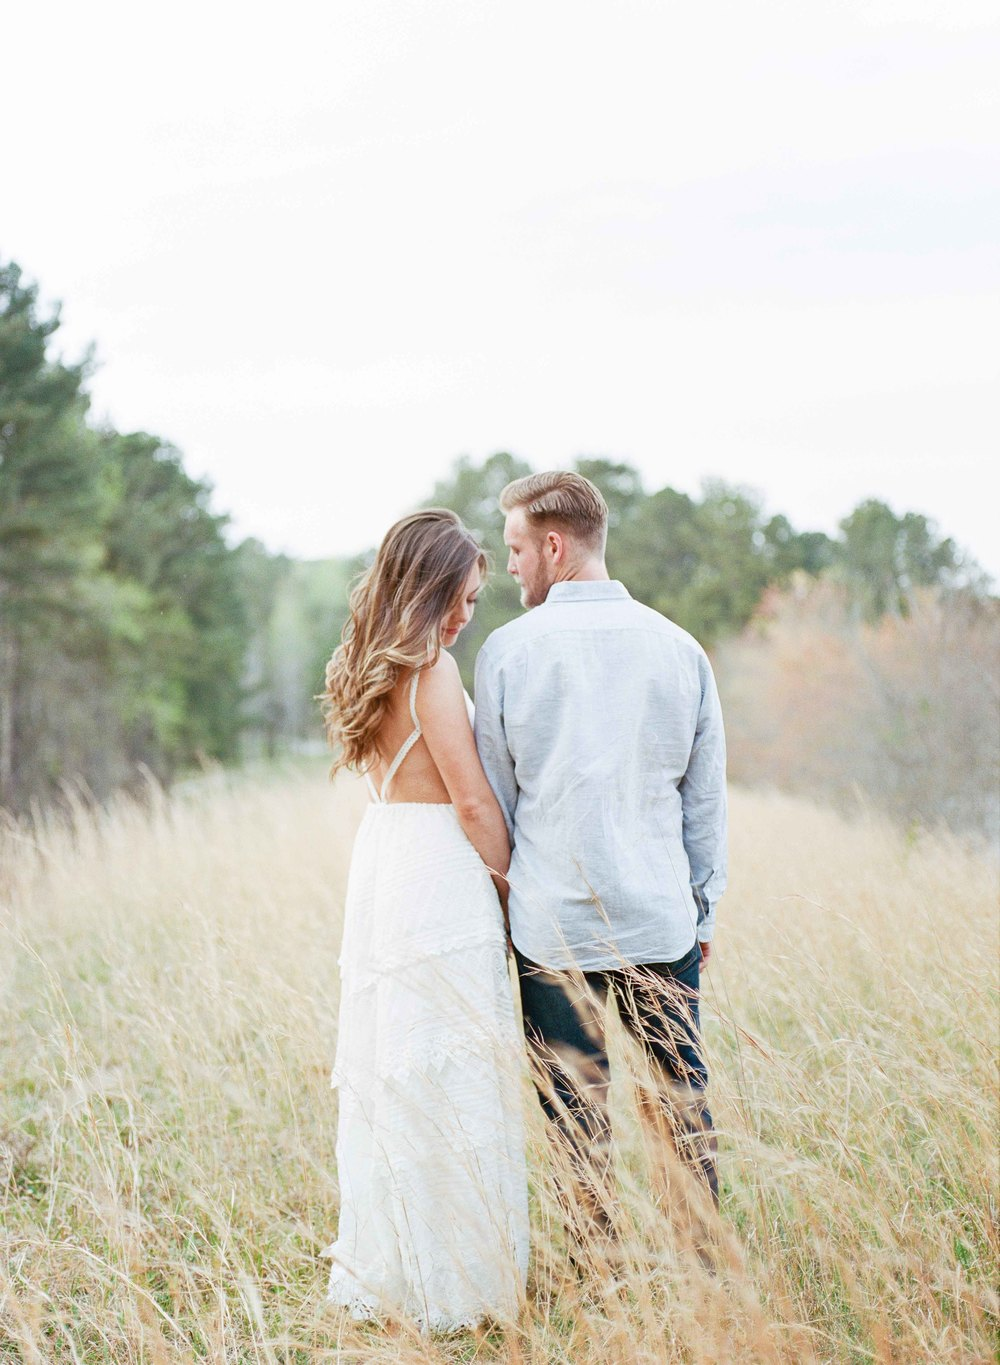 FINE ART ENGAGEMENT AT PRIVATE LAKE RESIDENCE | FEATURED BY THE SOUTHEASTERN BRIDE